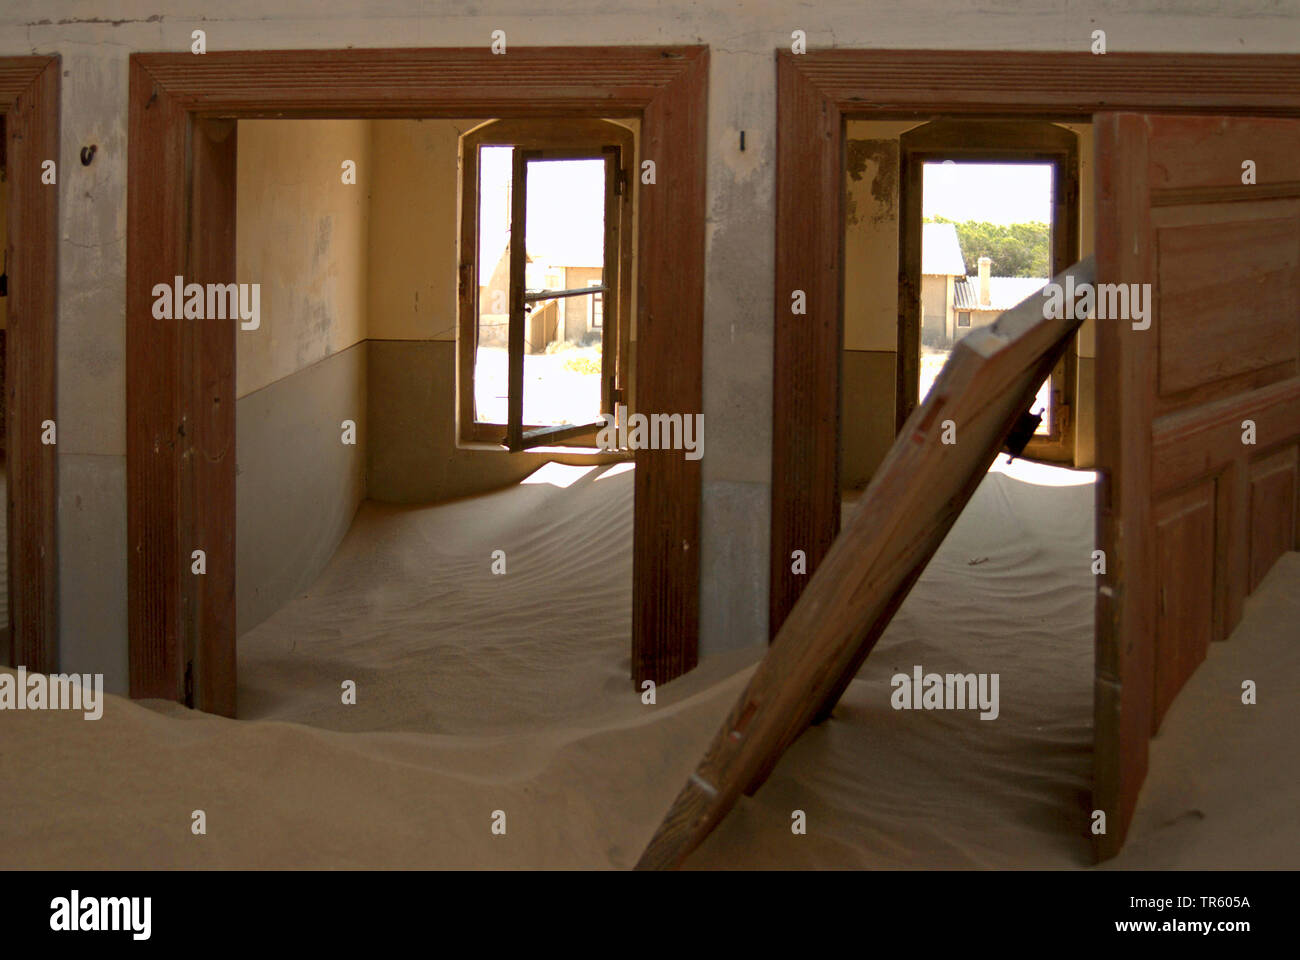 house in the ghost town Kolmannskuppe, interior, Namibia, Kolmannskuppe - Stock Image